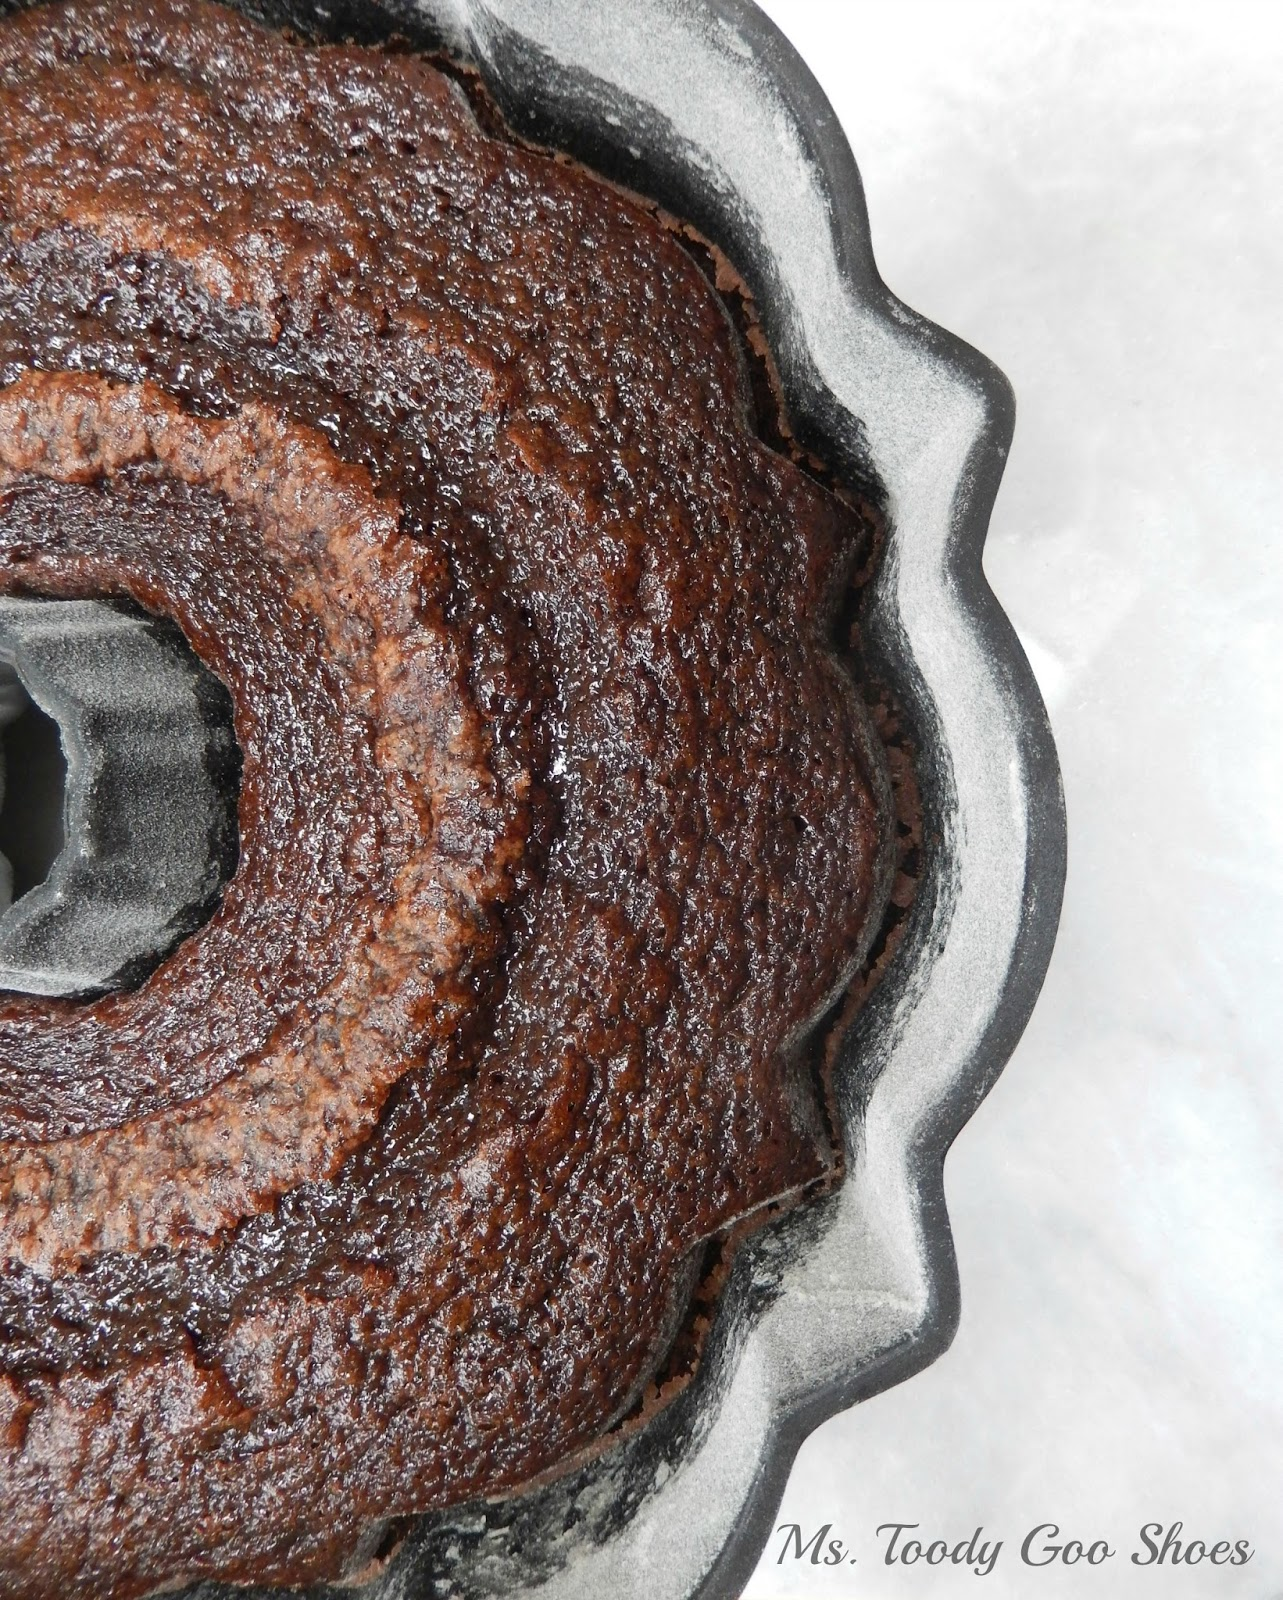 Died and Went to Heaven Chocolate Bundt Cake - One of my top five dessert recipes of 2014